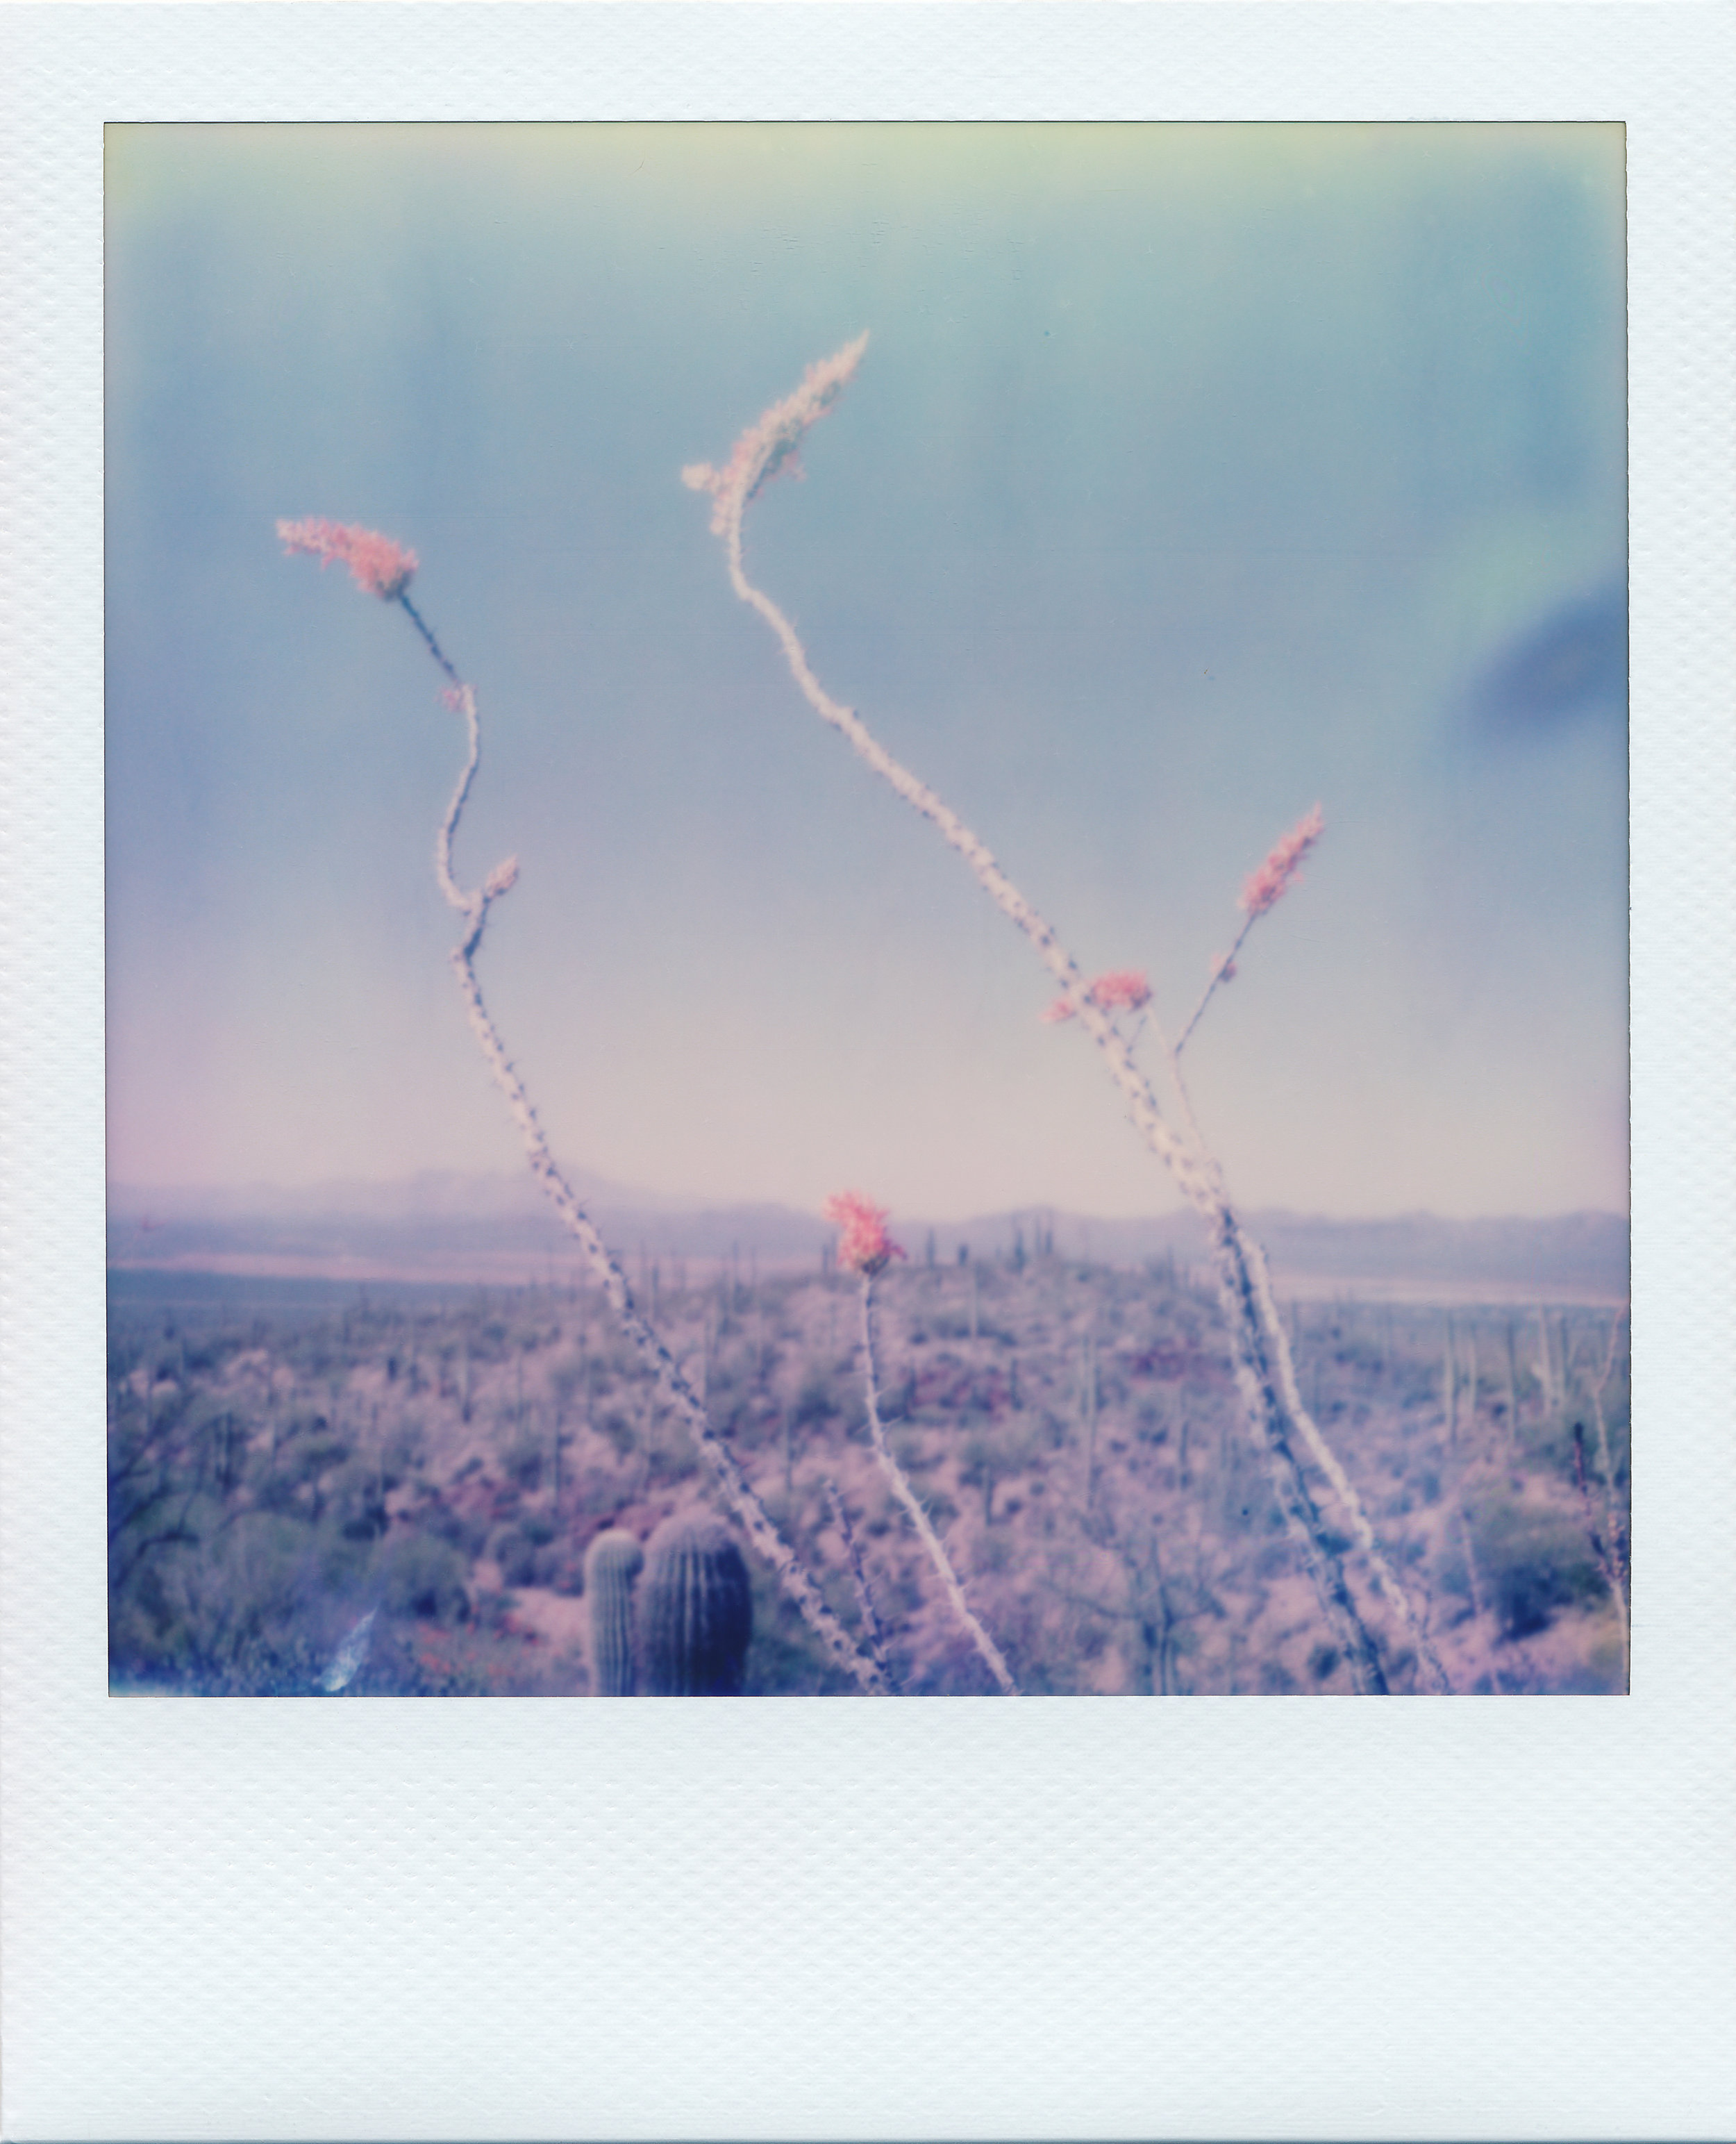 Desert Flowers  comprises of over 150 Polaroids taken over the course of a month long roadtrip through the Sonoran, Chihuahuan, and Mojave desert, drawing a parallel between desert ecology and queer Southwestern youth.